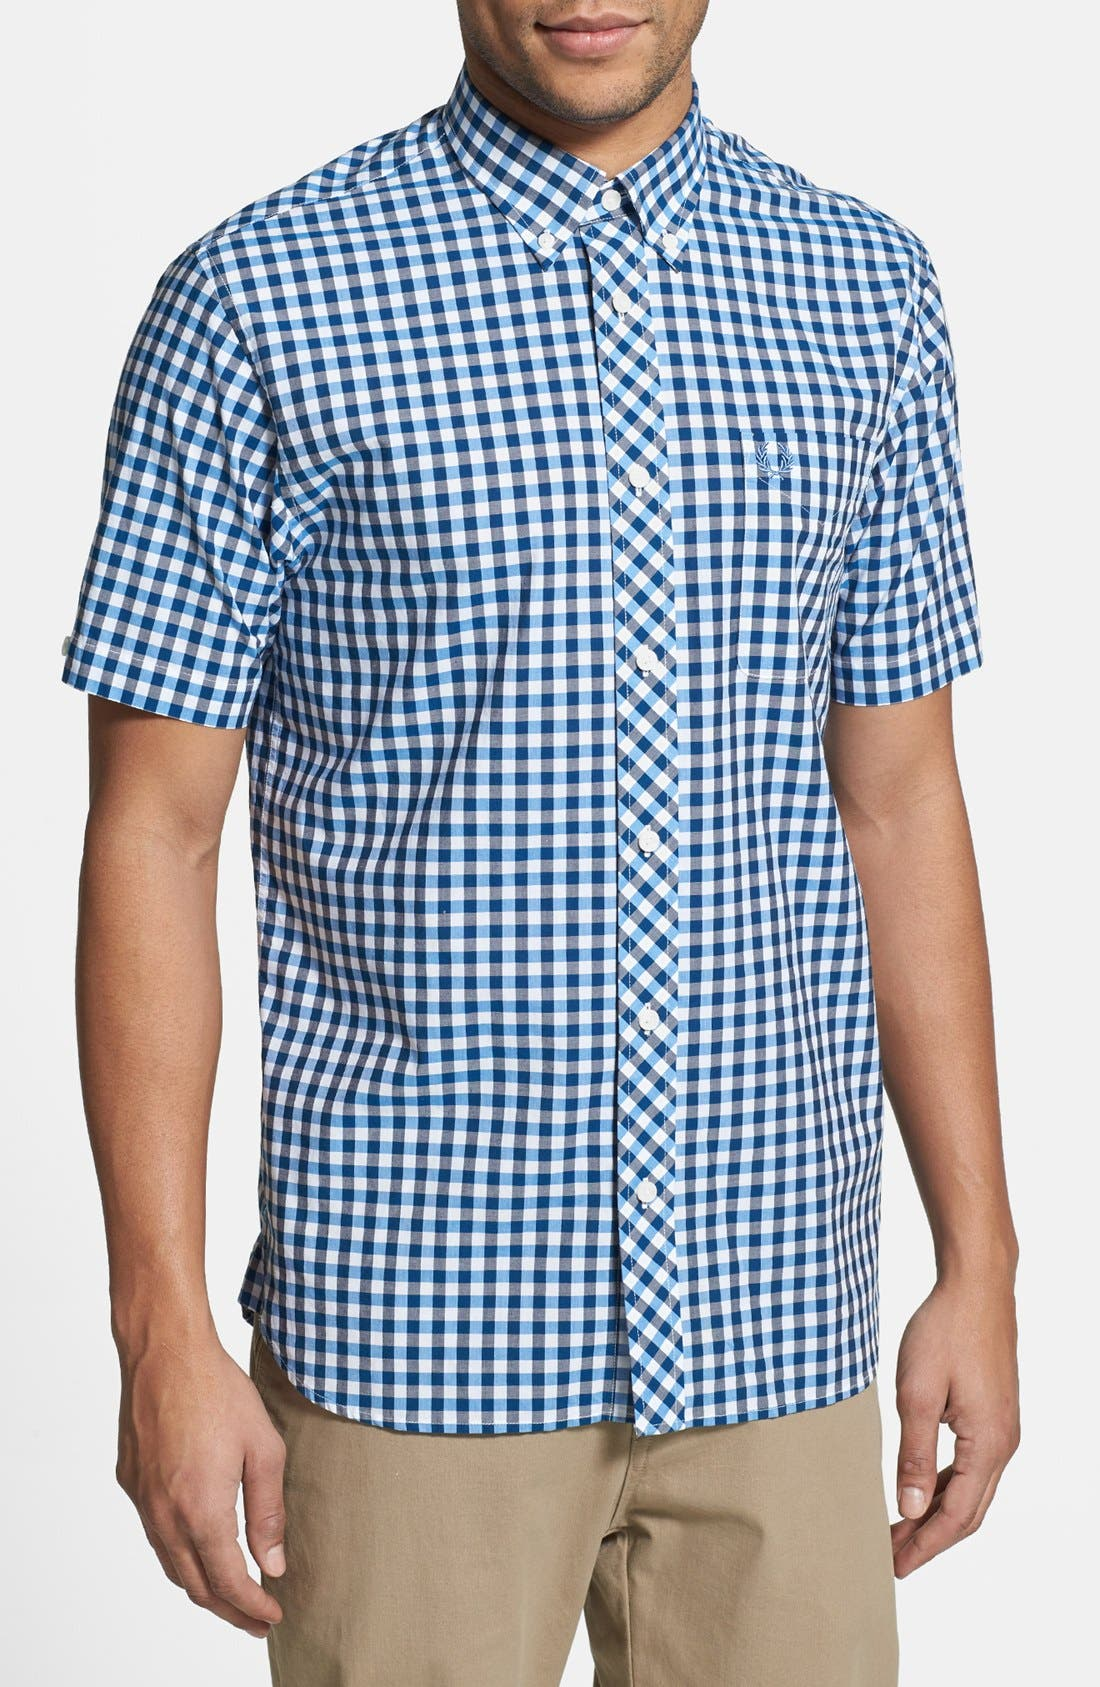 Alternate Image 1 Selected - Fred Perry Tricolor Gingham Short Sleeve Sport Shirt